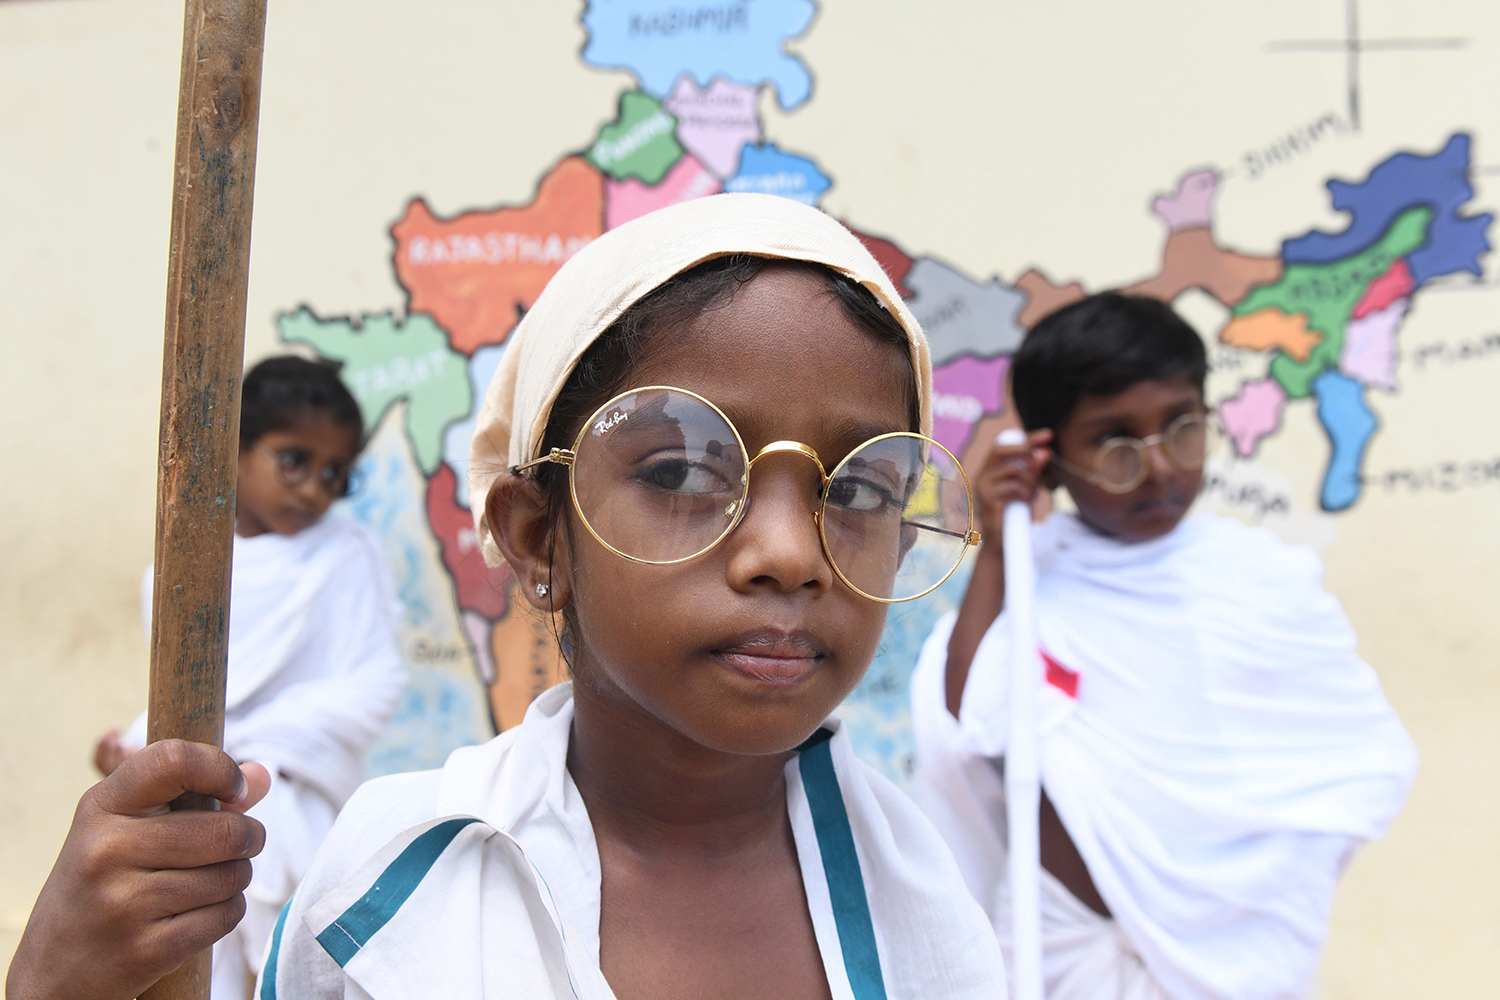 A student dressed like Mahatma Gandhi attends an event at a school in Chennai to mark the 150th anniversary of the Indian independence leader's birth on Oct. 2. ARUN SANKAR/AFP via Getty Images